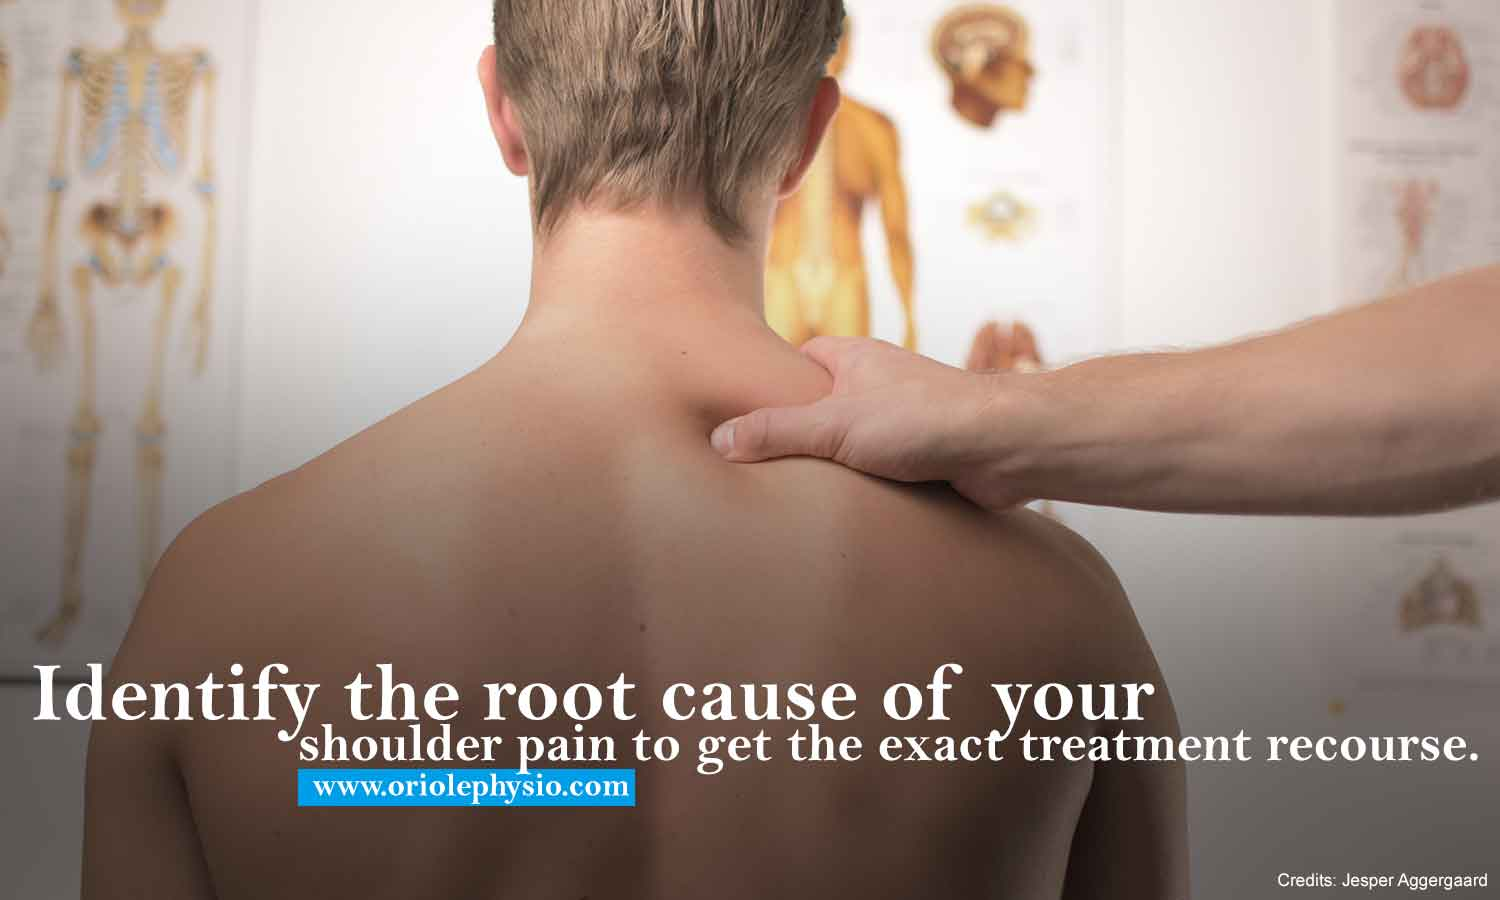 Identify the root cause of your shoulder pain to get the exact treatment recourse.